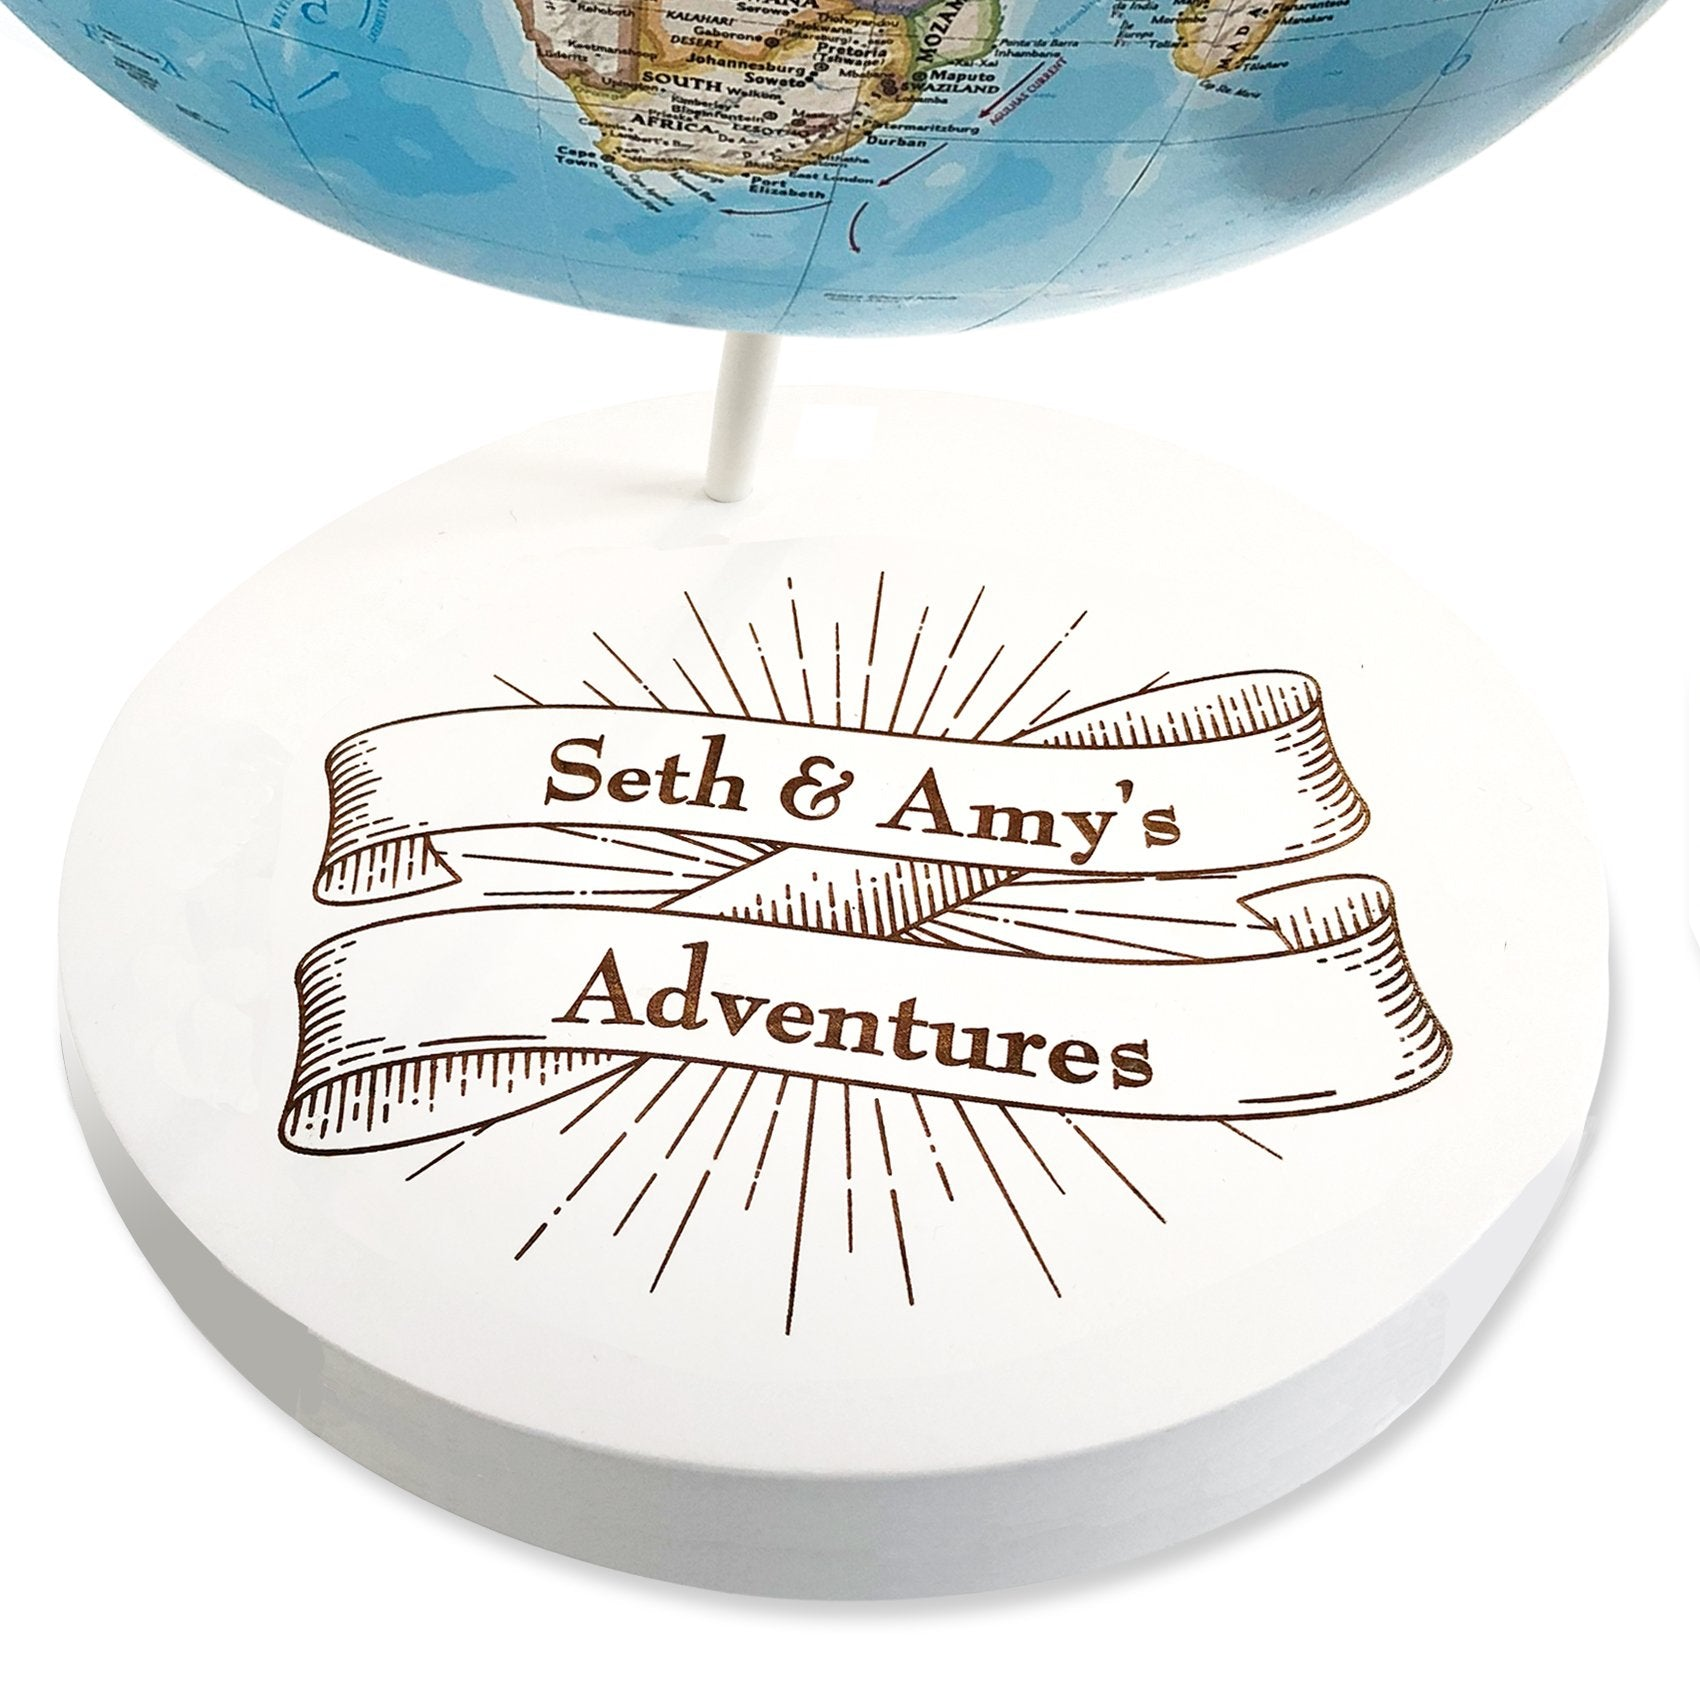 Custom Engraved Adventures Banner Push Pin Globe by Wendy Gold